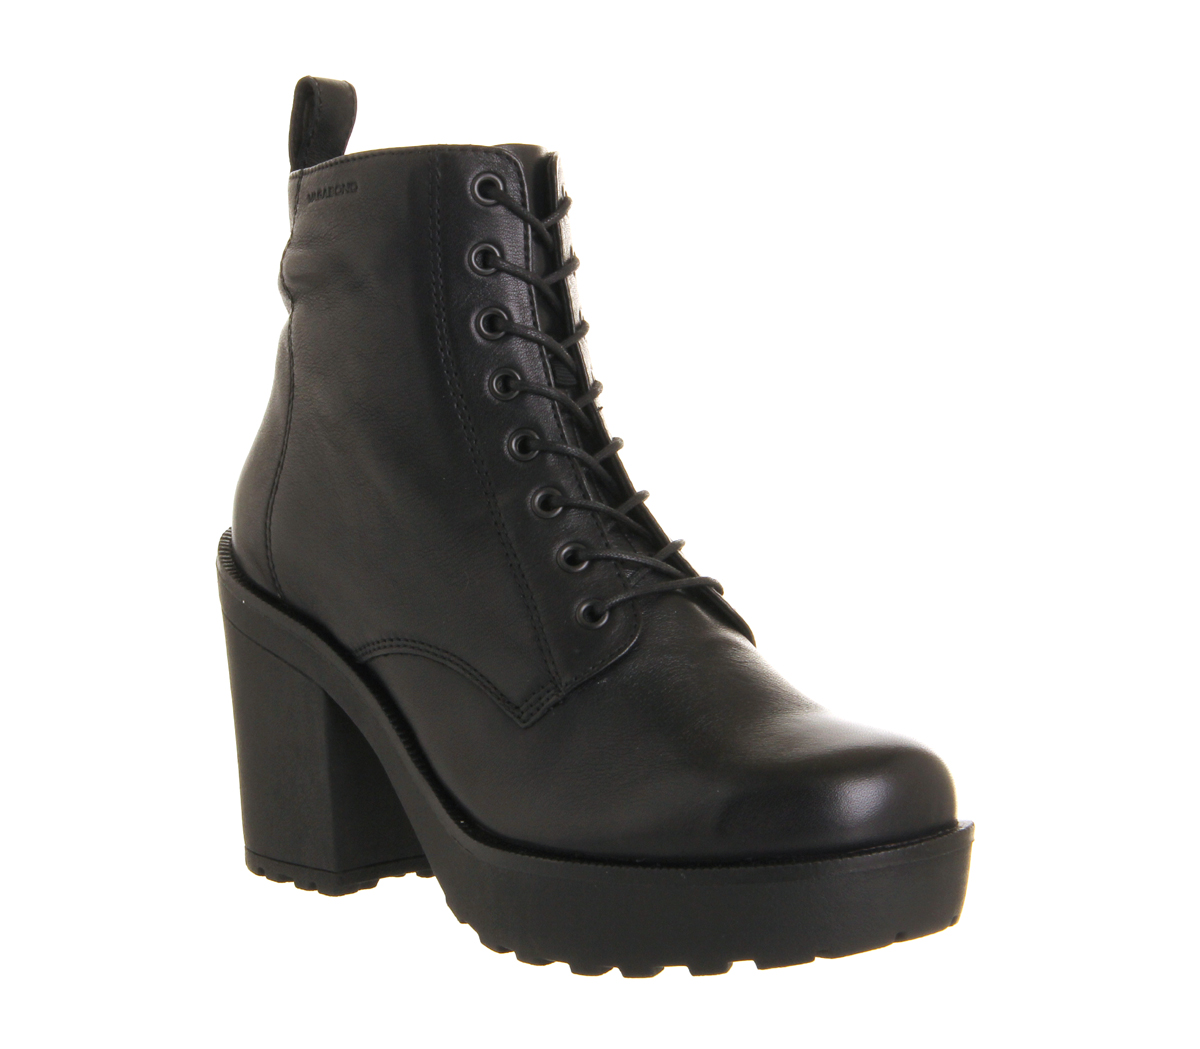 Womens Vagabond Libby Heeled Lace Up BLACK LEATHER Boots | eBay